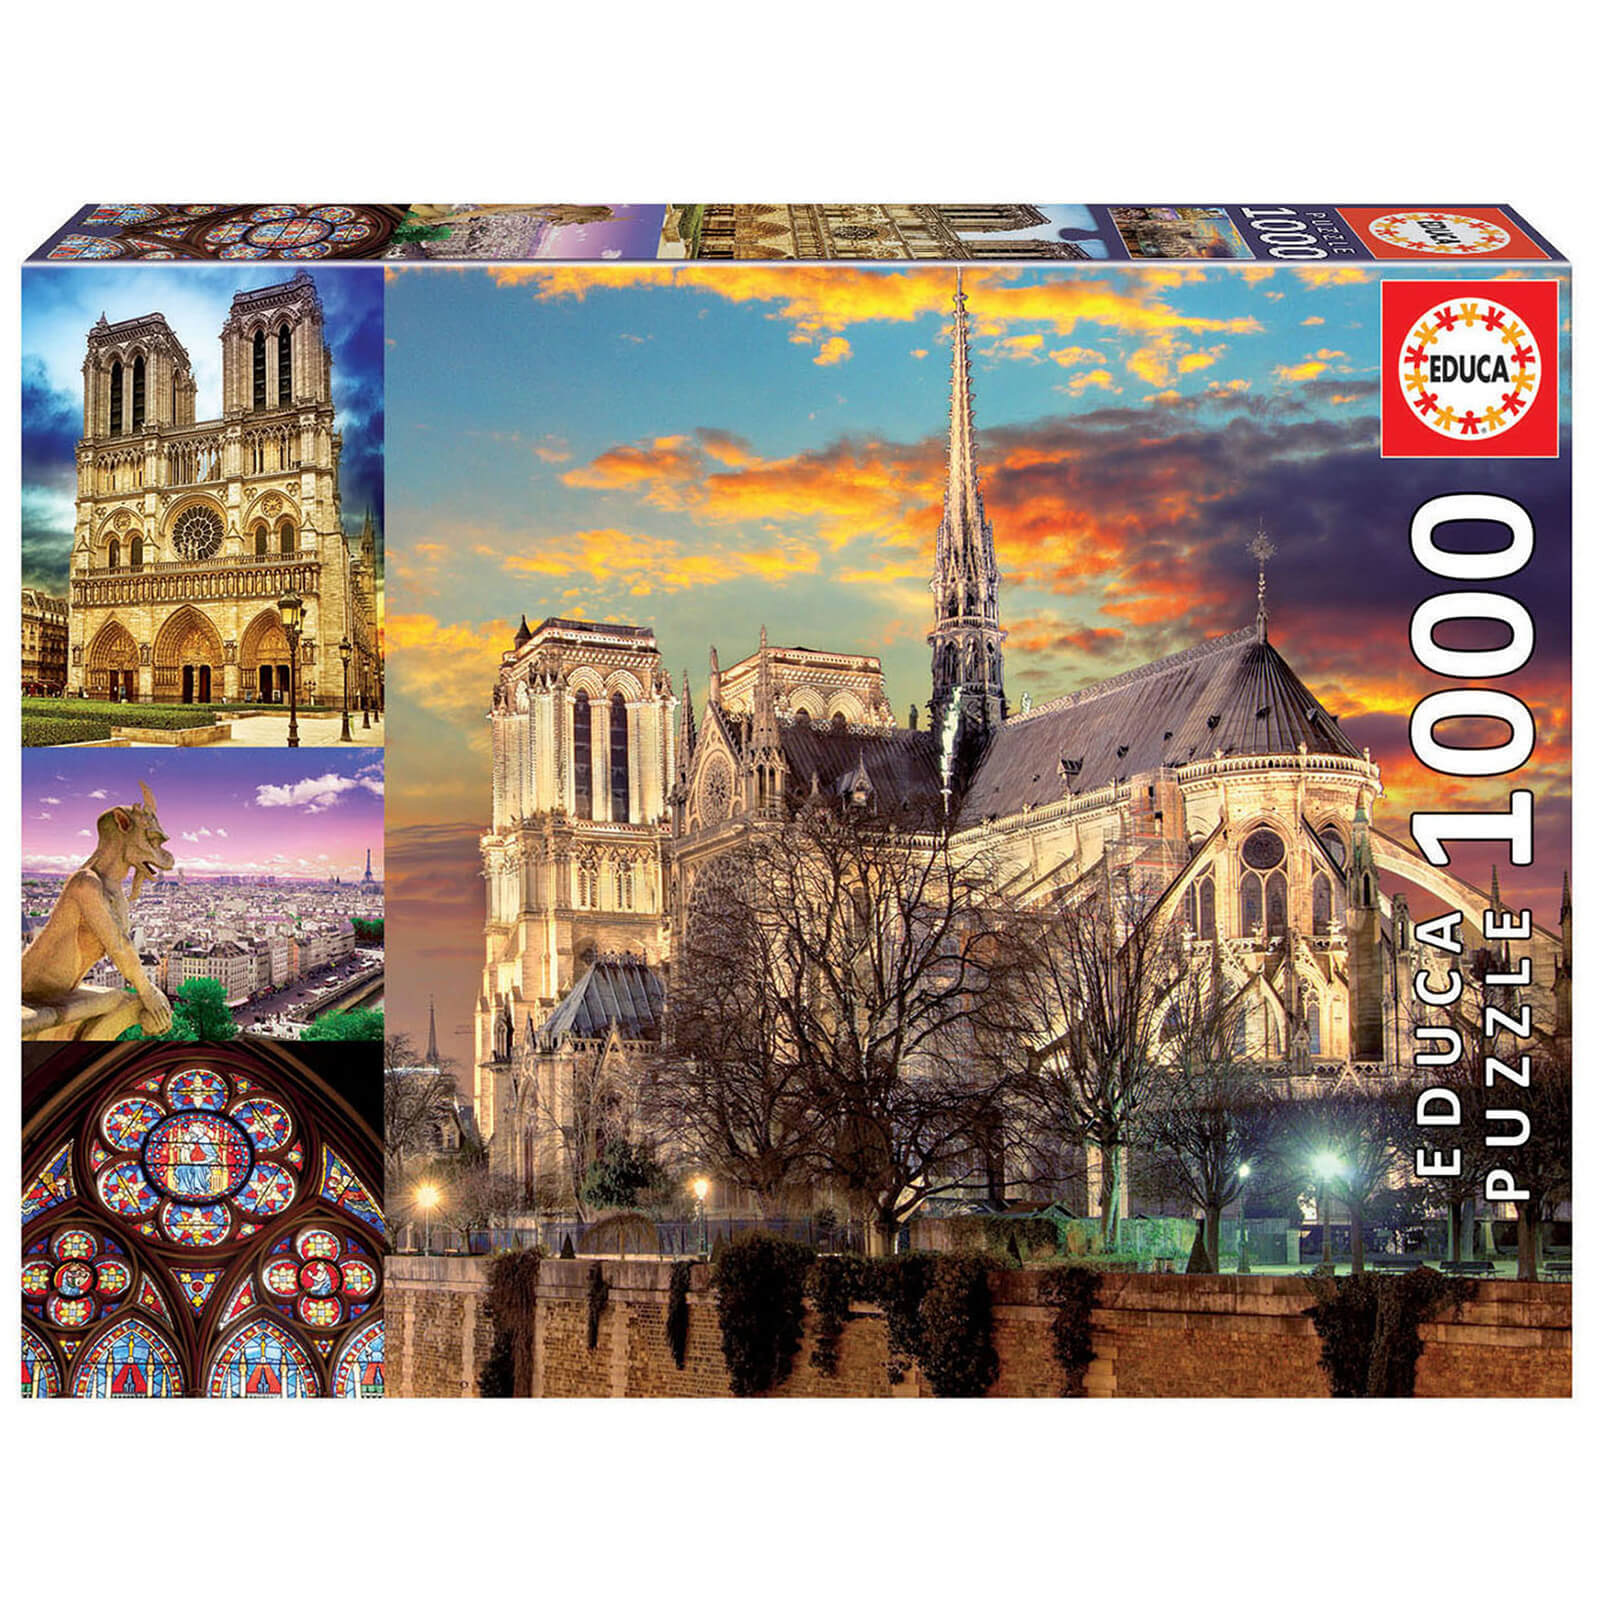 Image of Notre Dame Collage Jigsaw Puzzle (1000 Pieces)